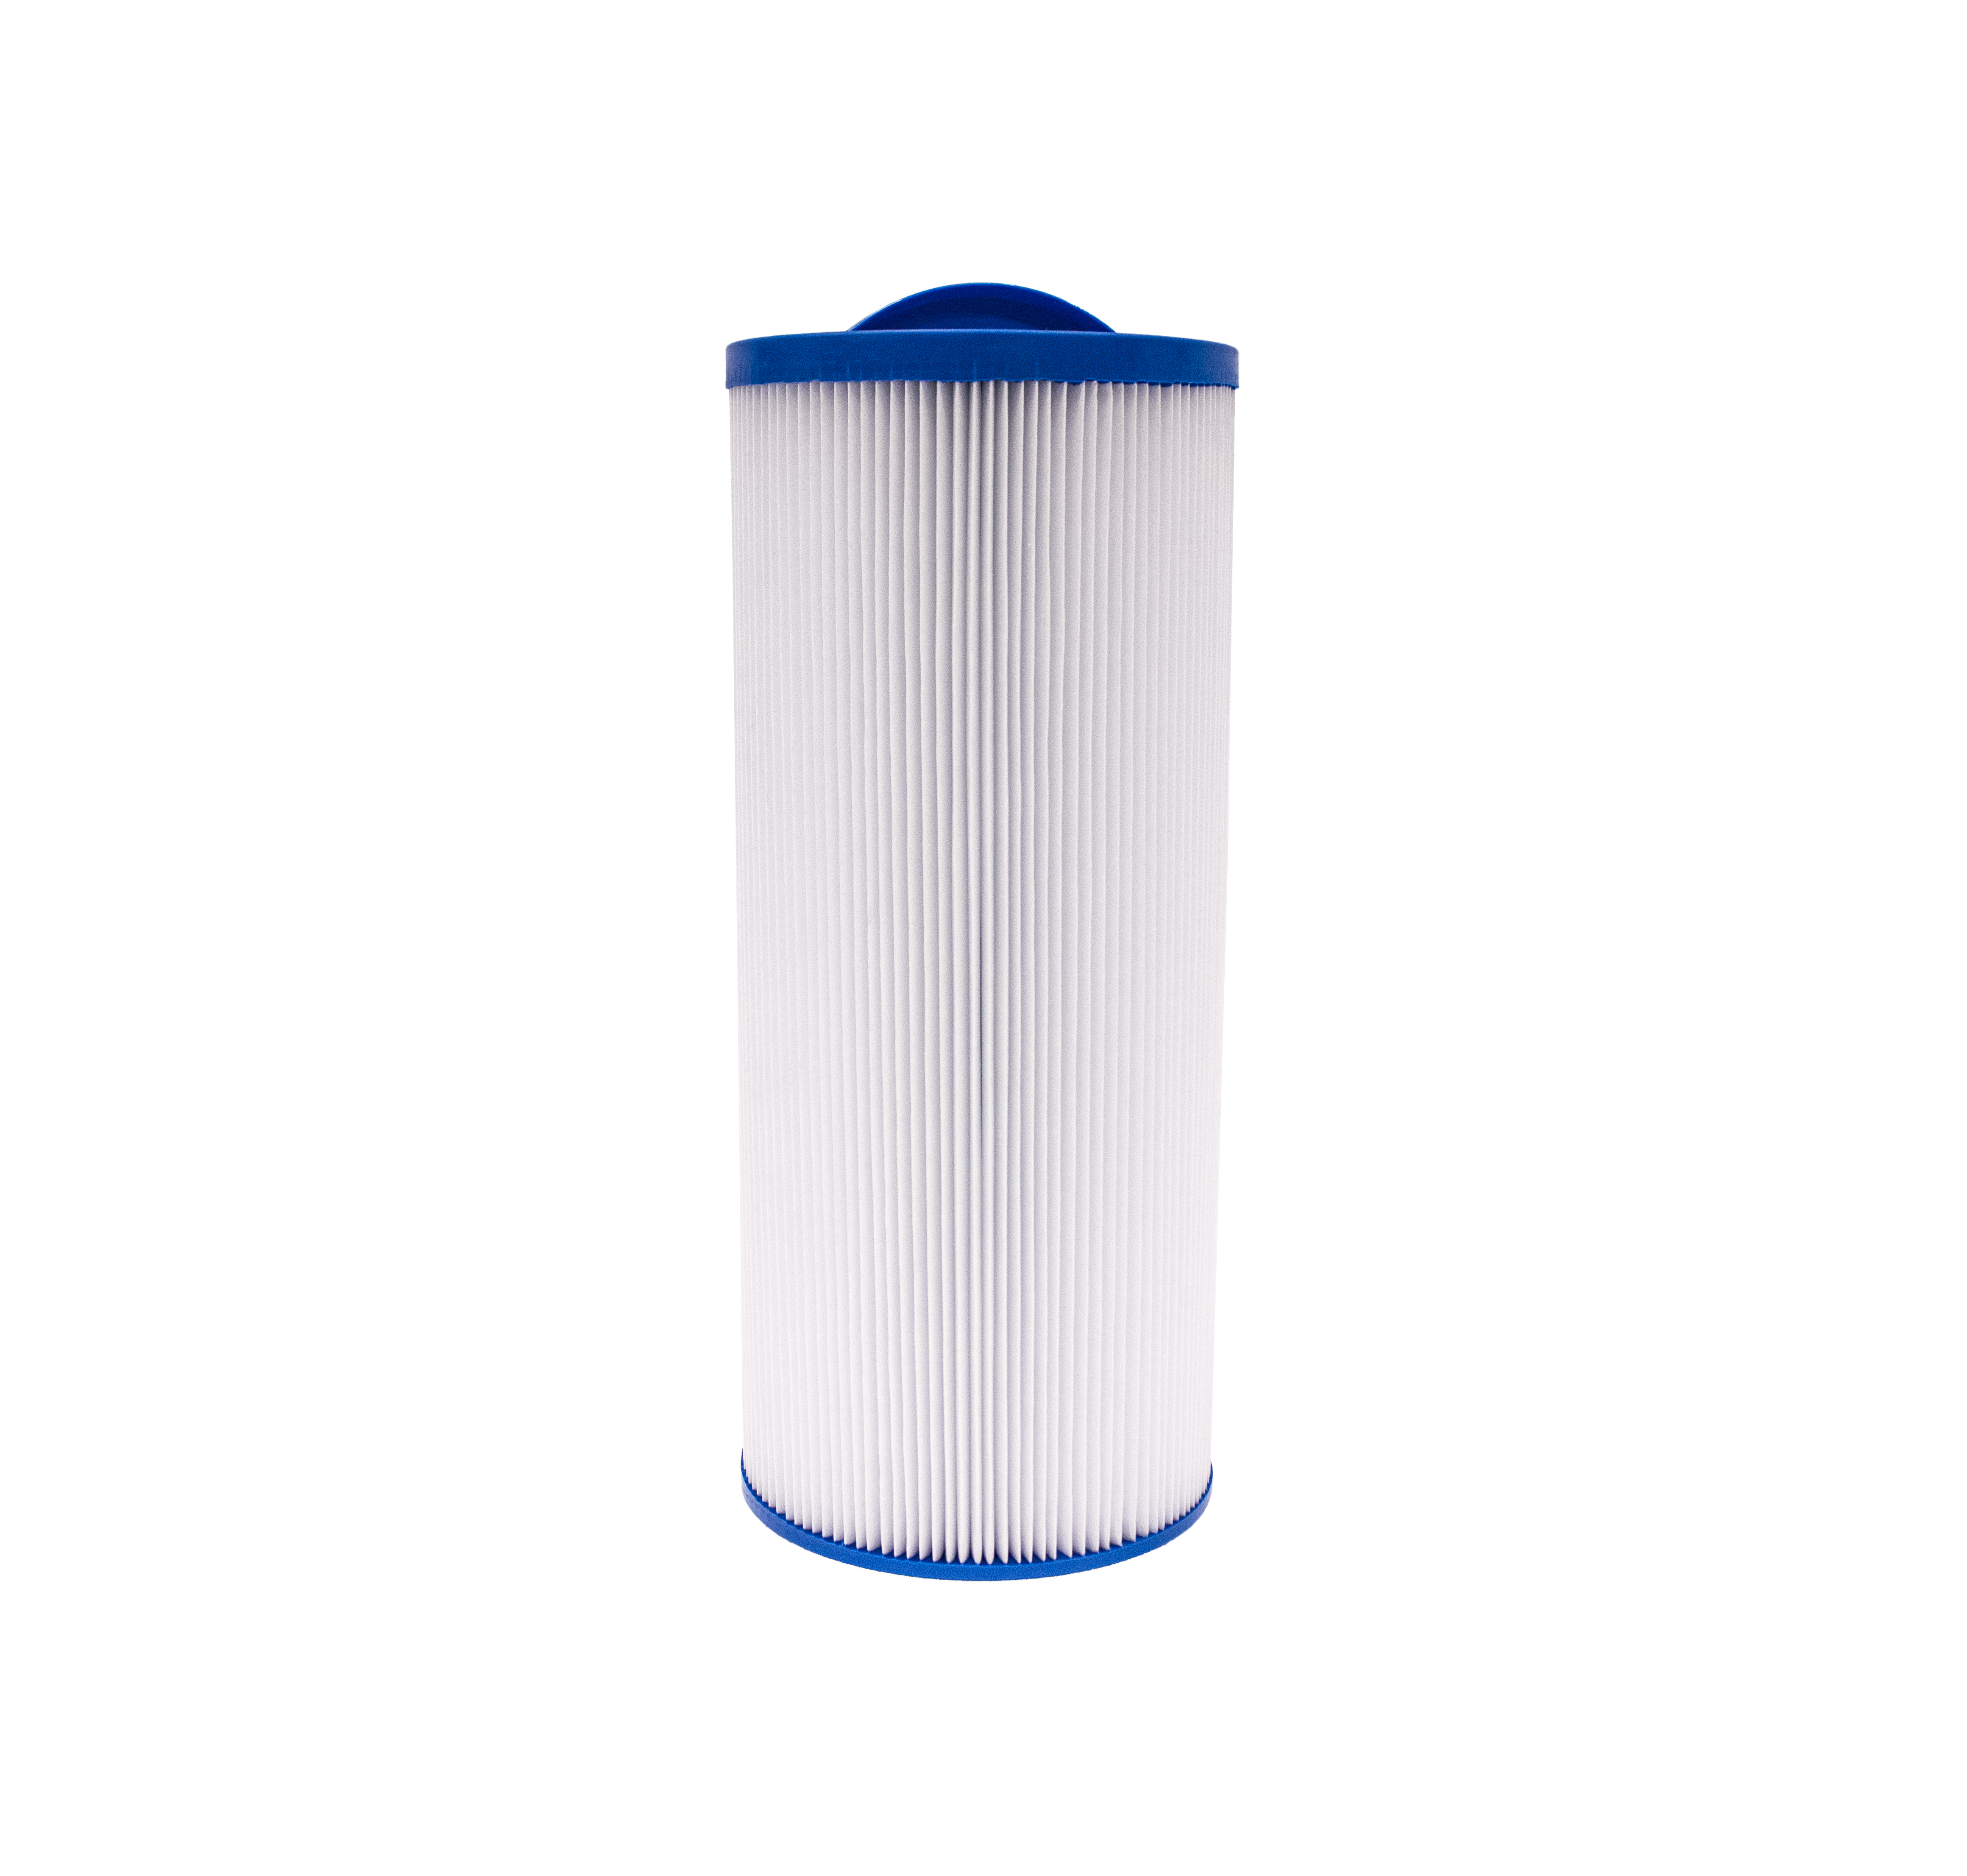 Jacuzzi filter 6CH-960